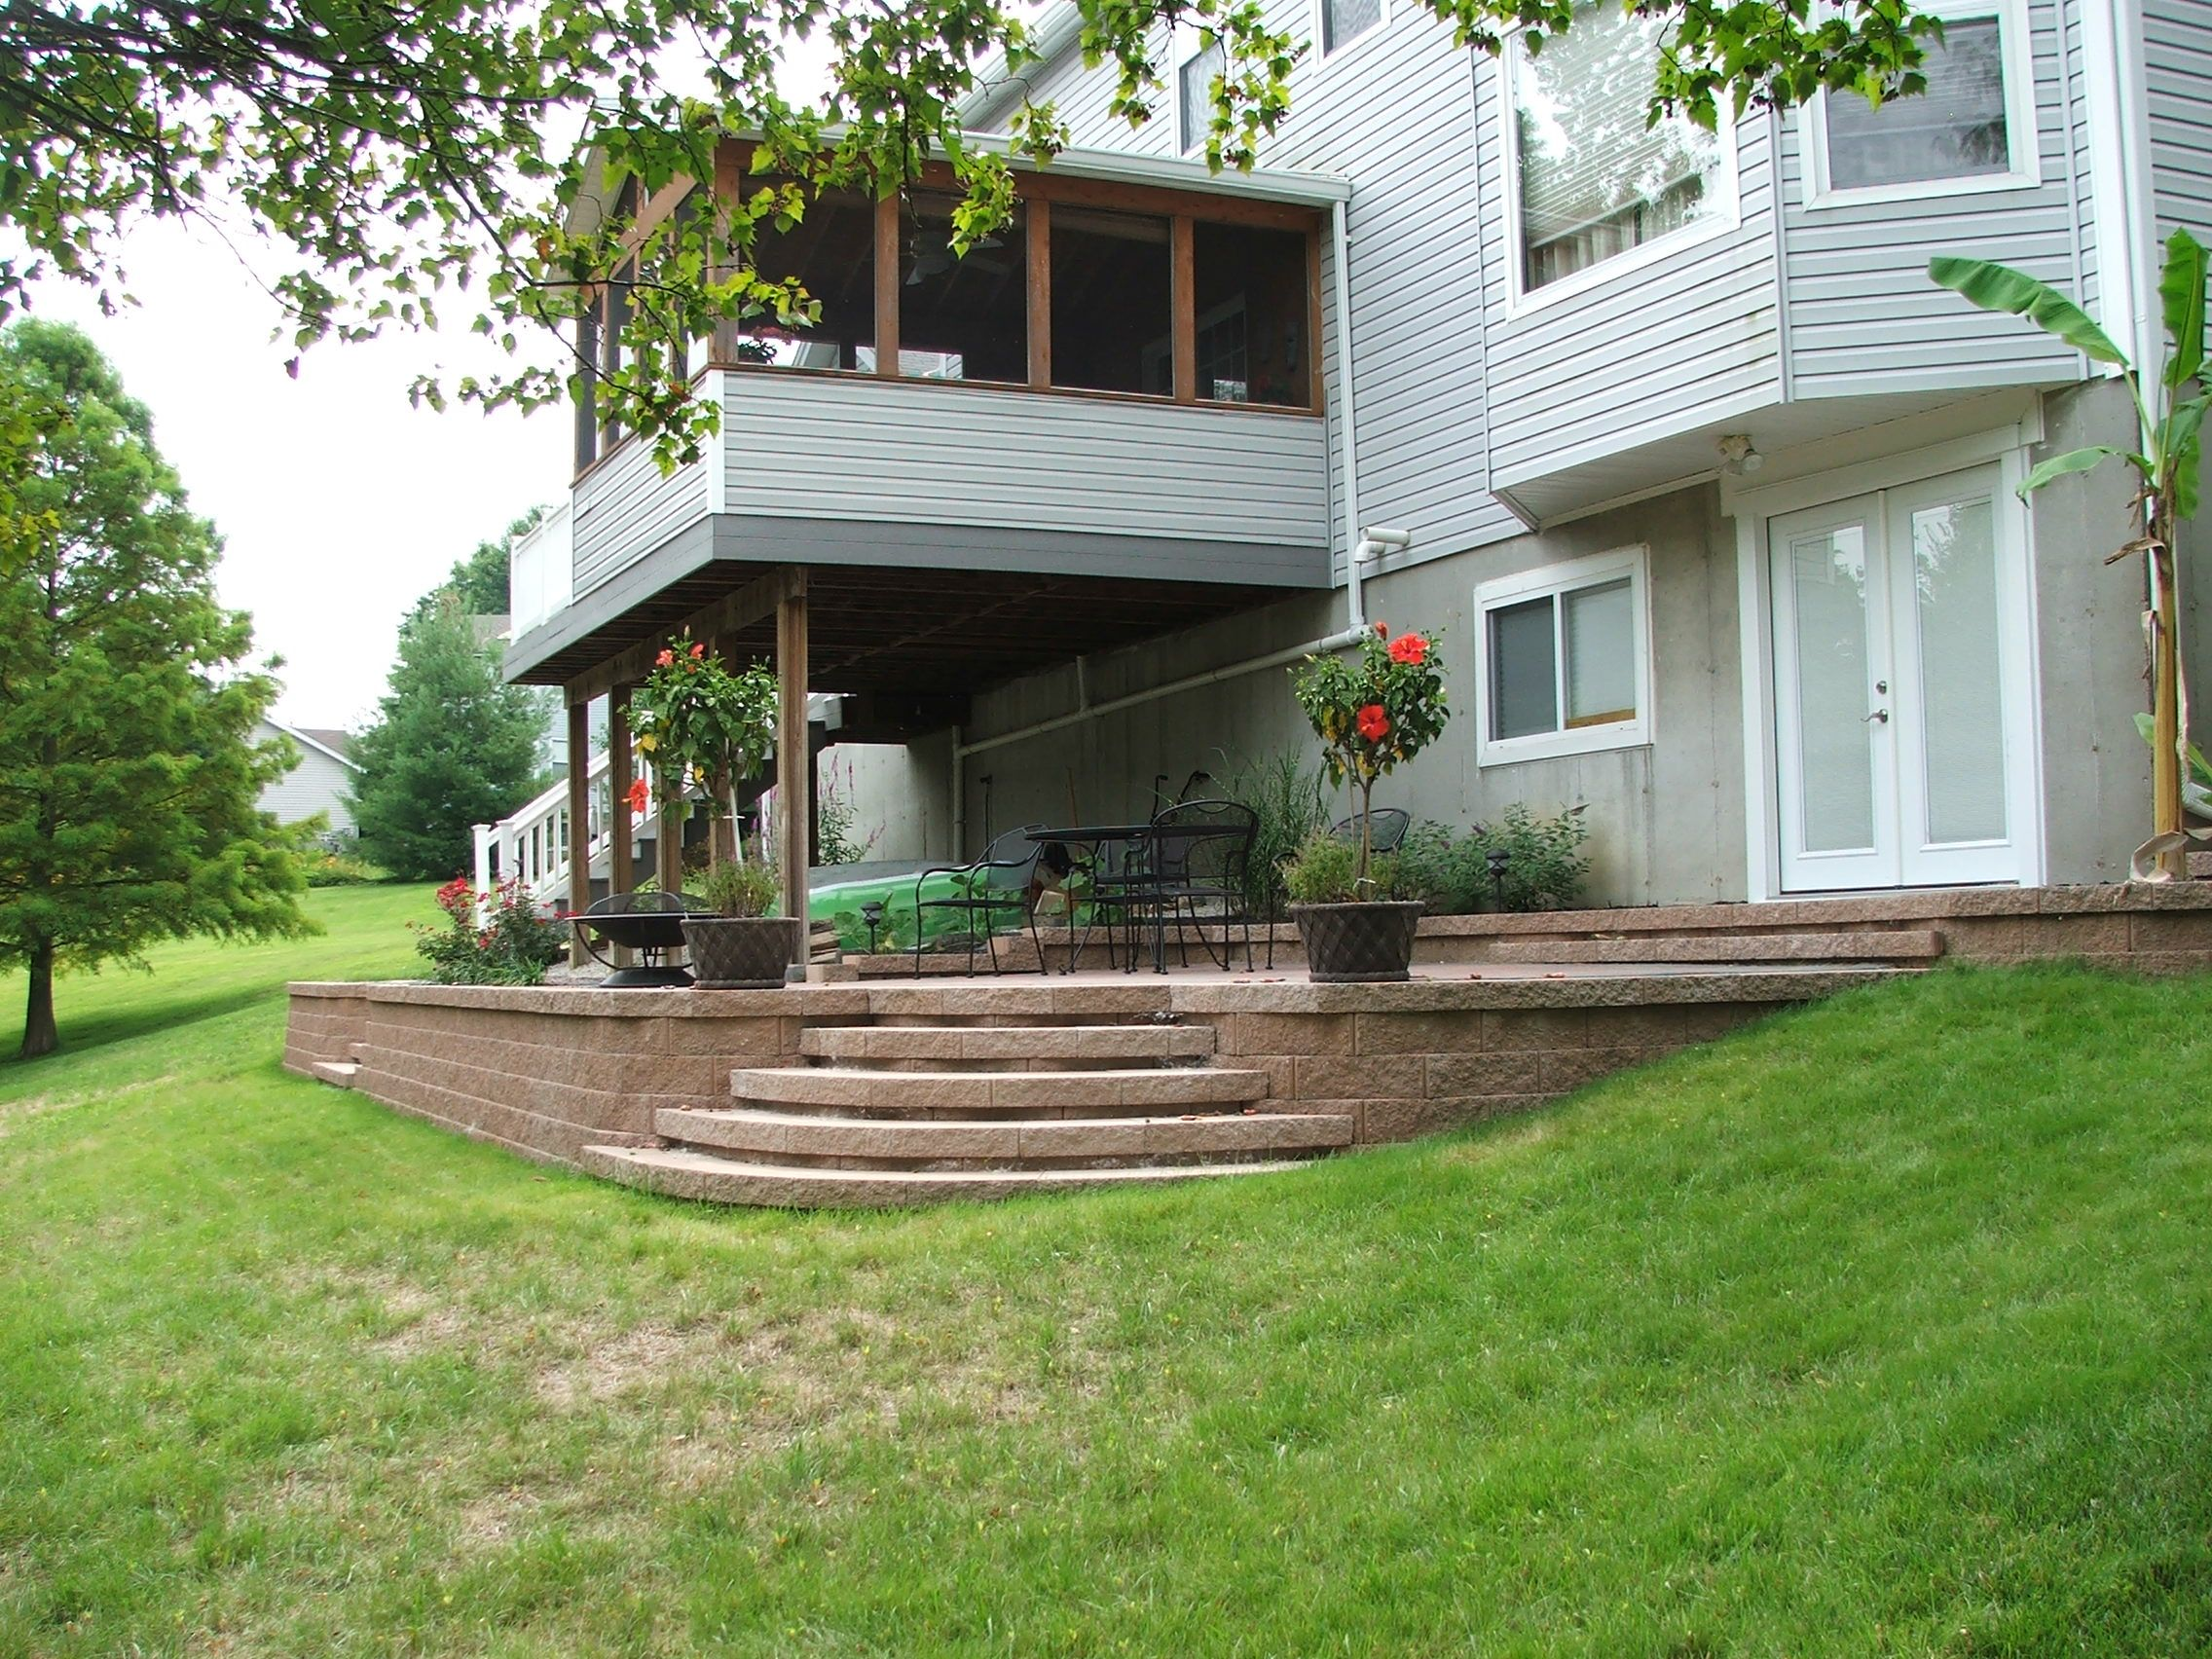 Patio on a hill google search patio ideas 2014 for Outdoor living ideas patio